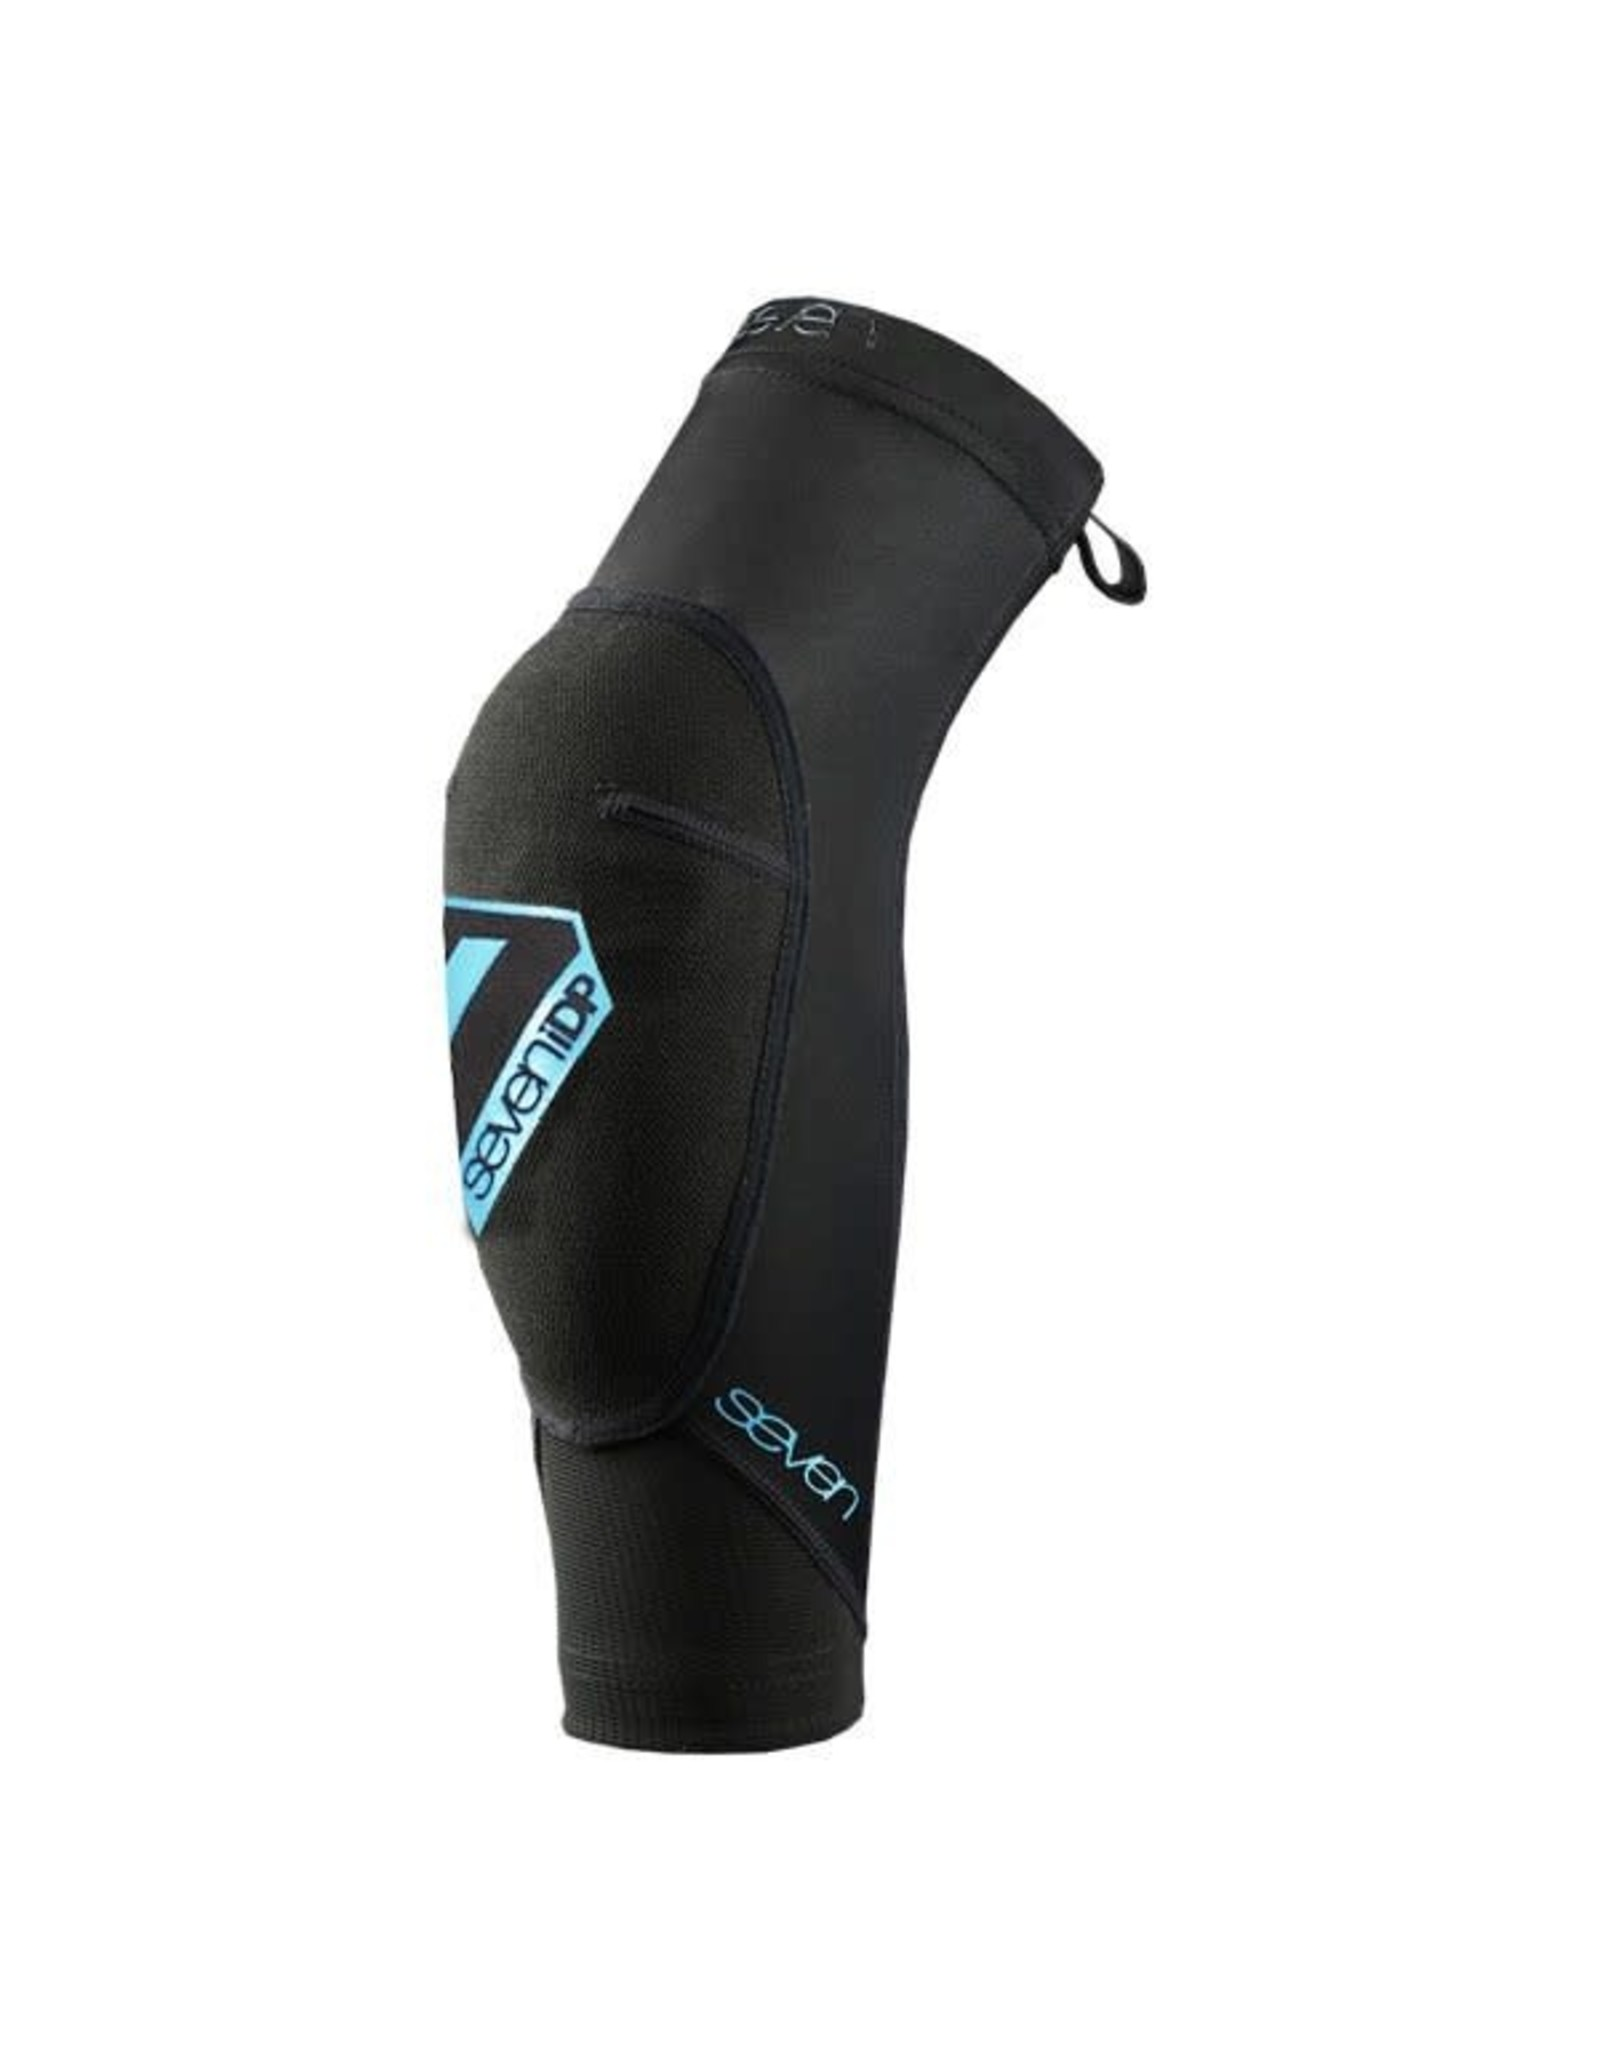 7iDP TRANSITION ELBOW/FOREARM LARGE